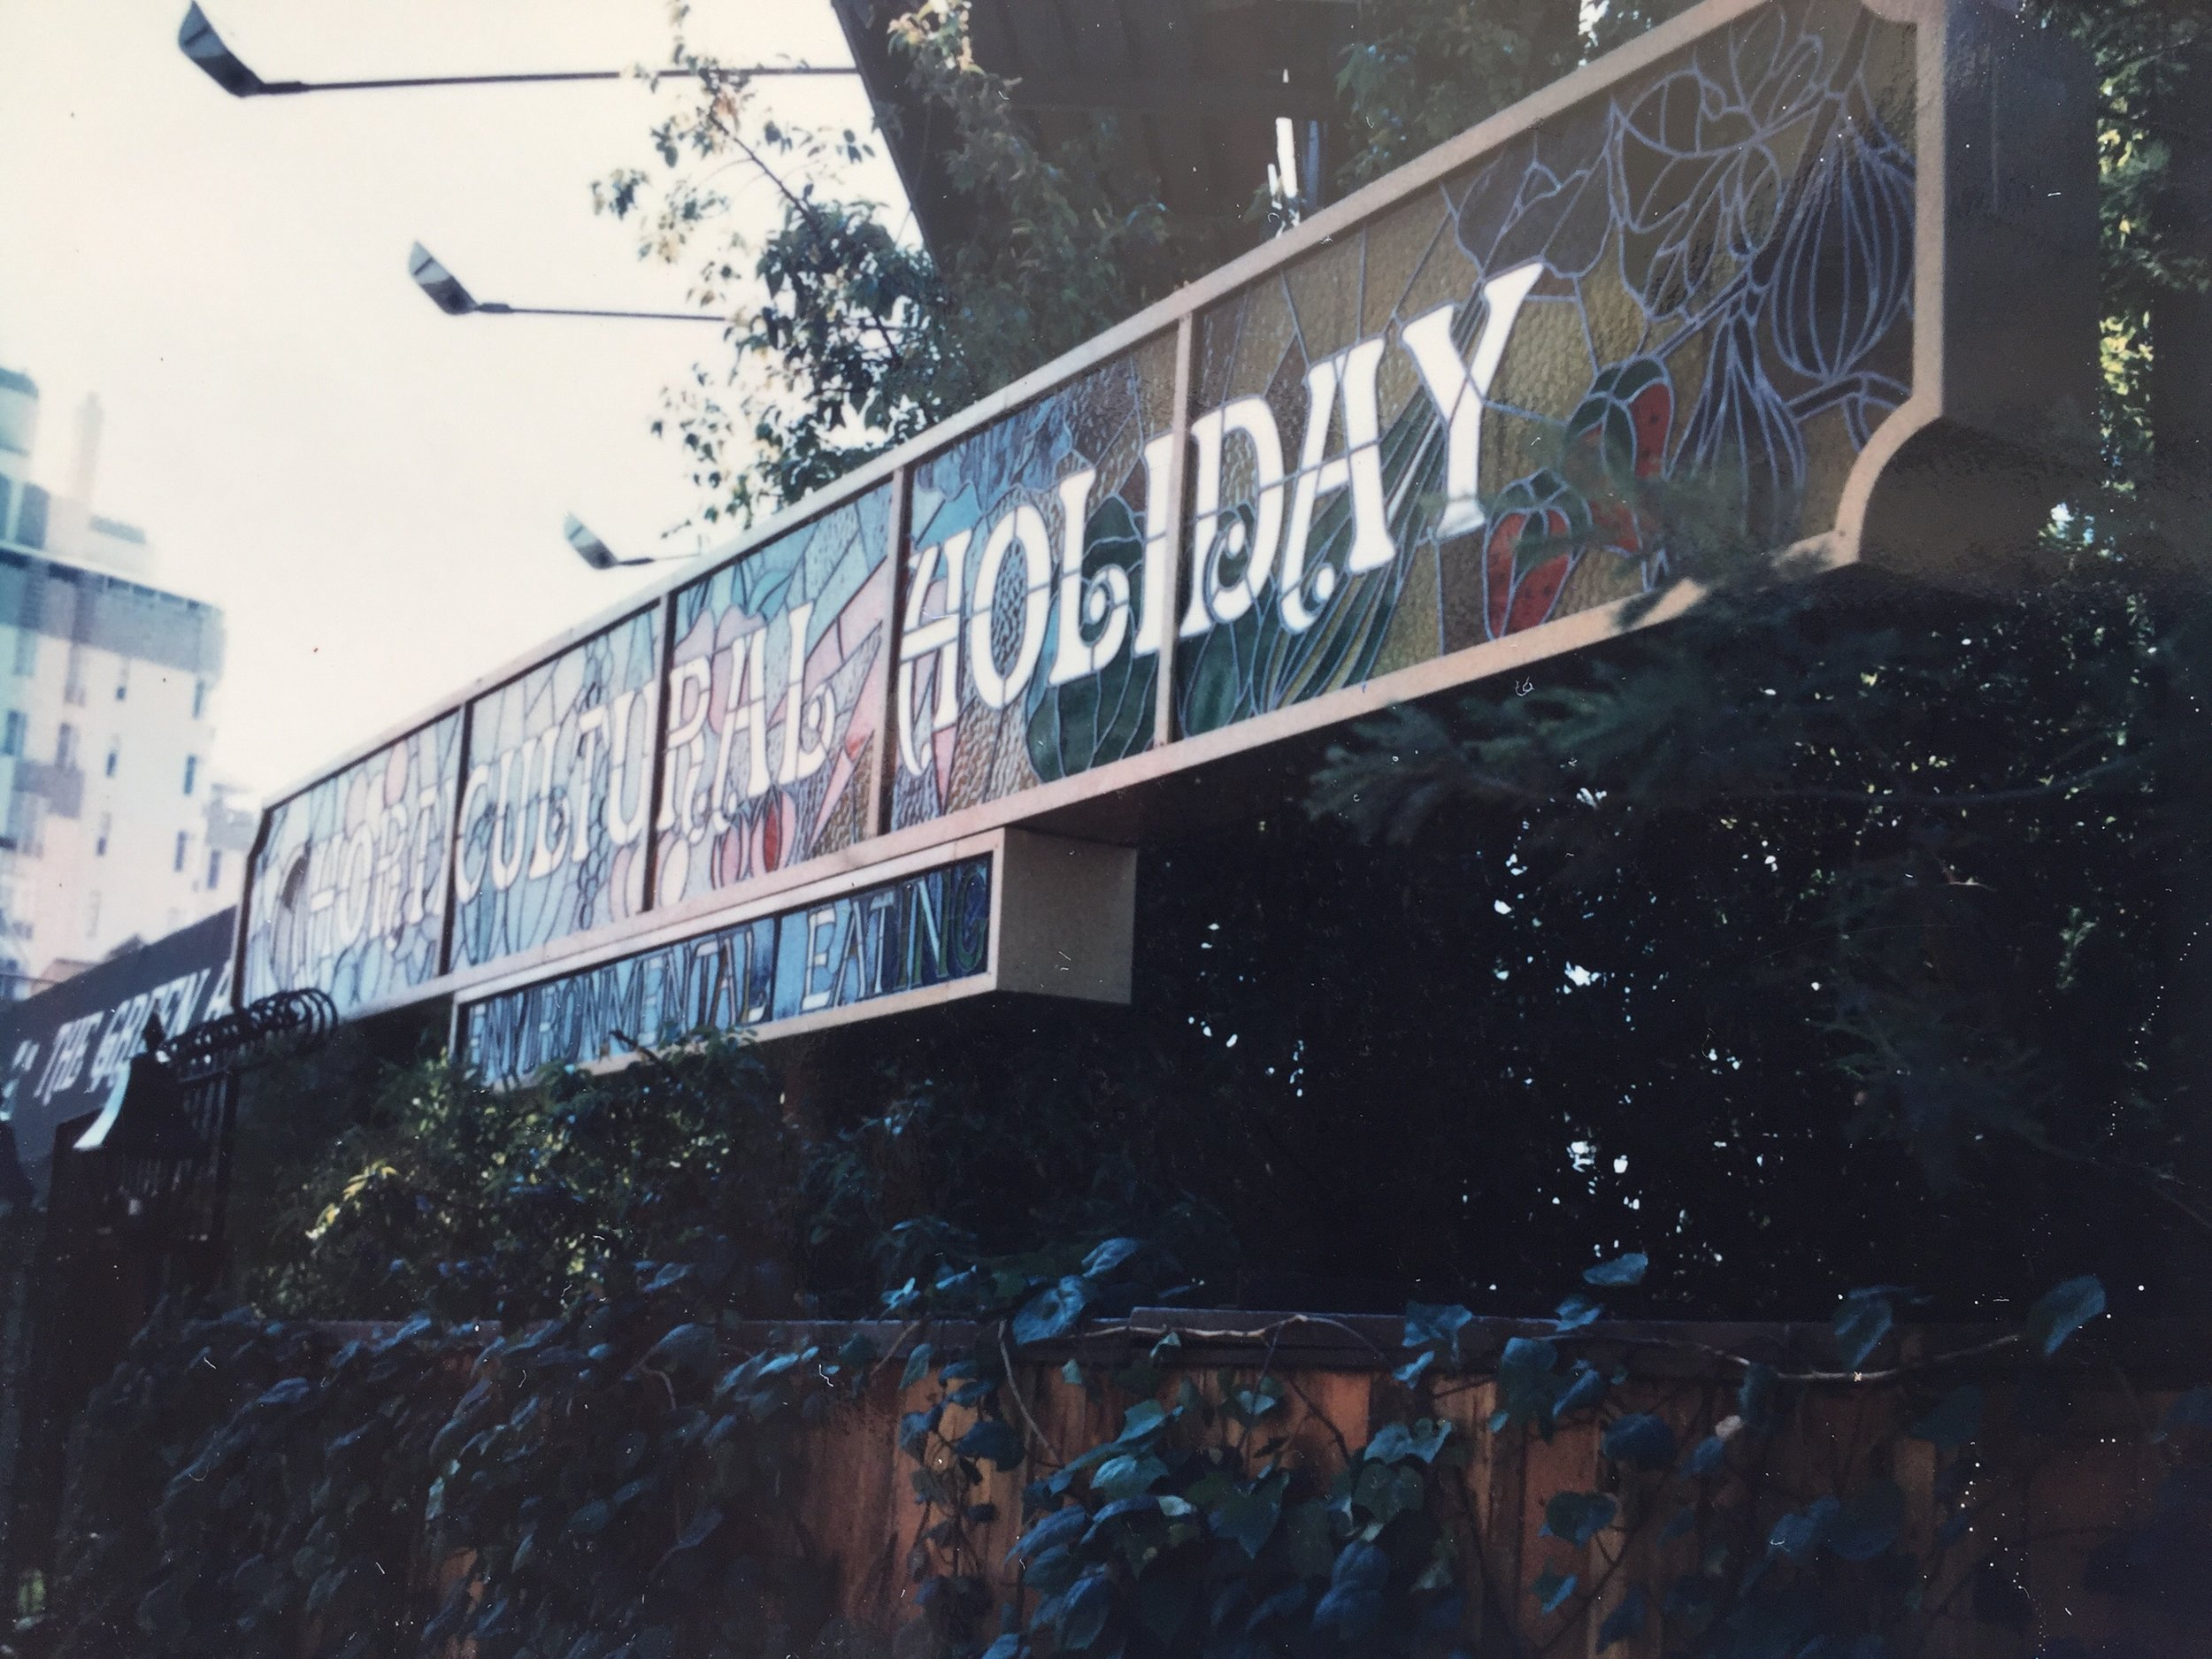 Horticultural Holiday 1972